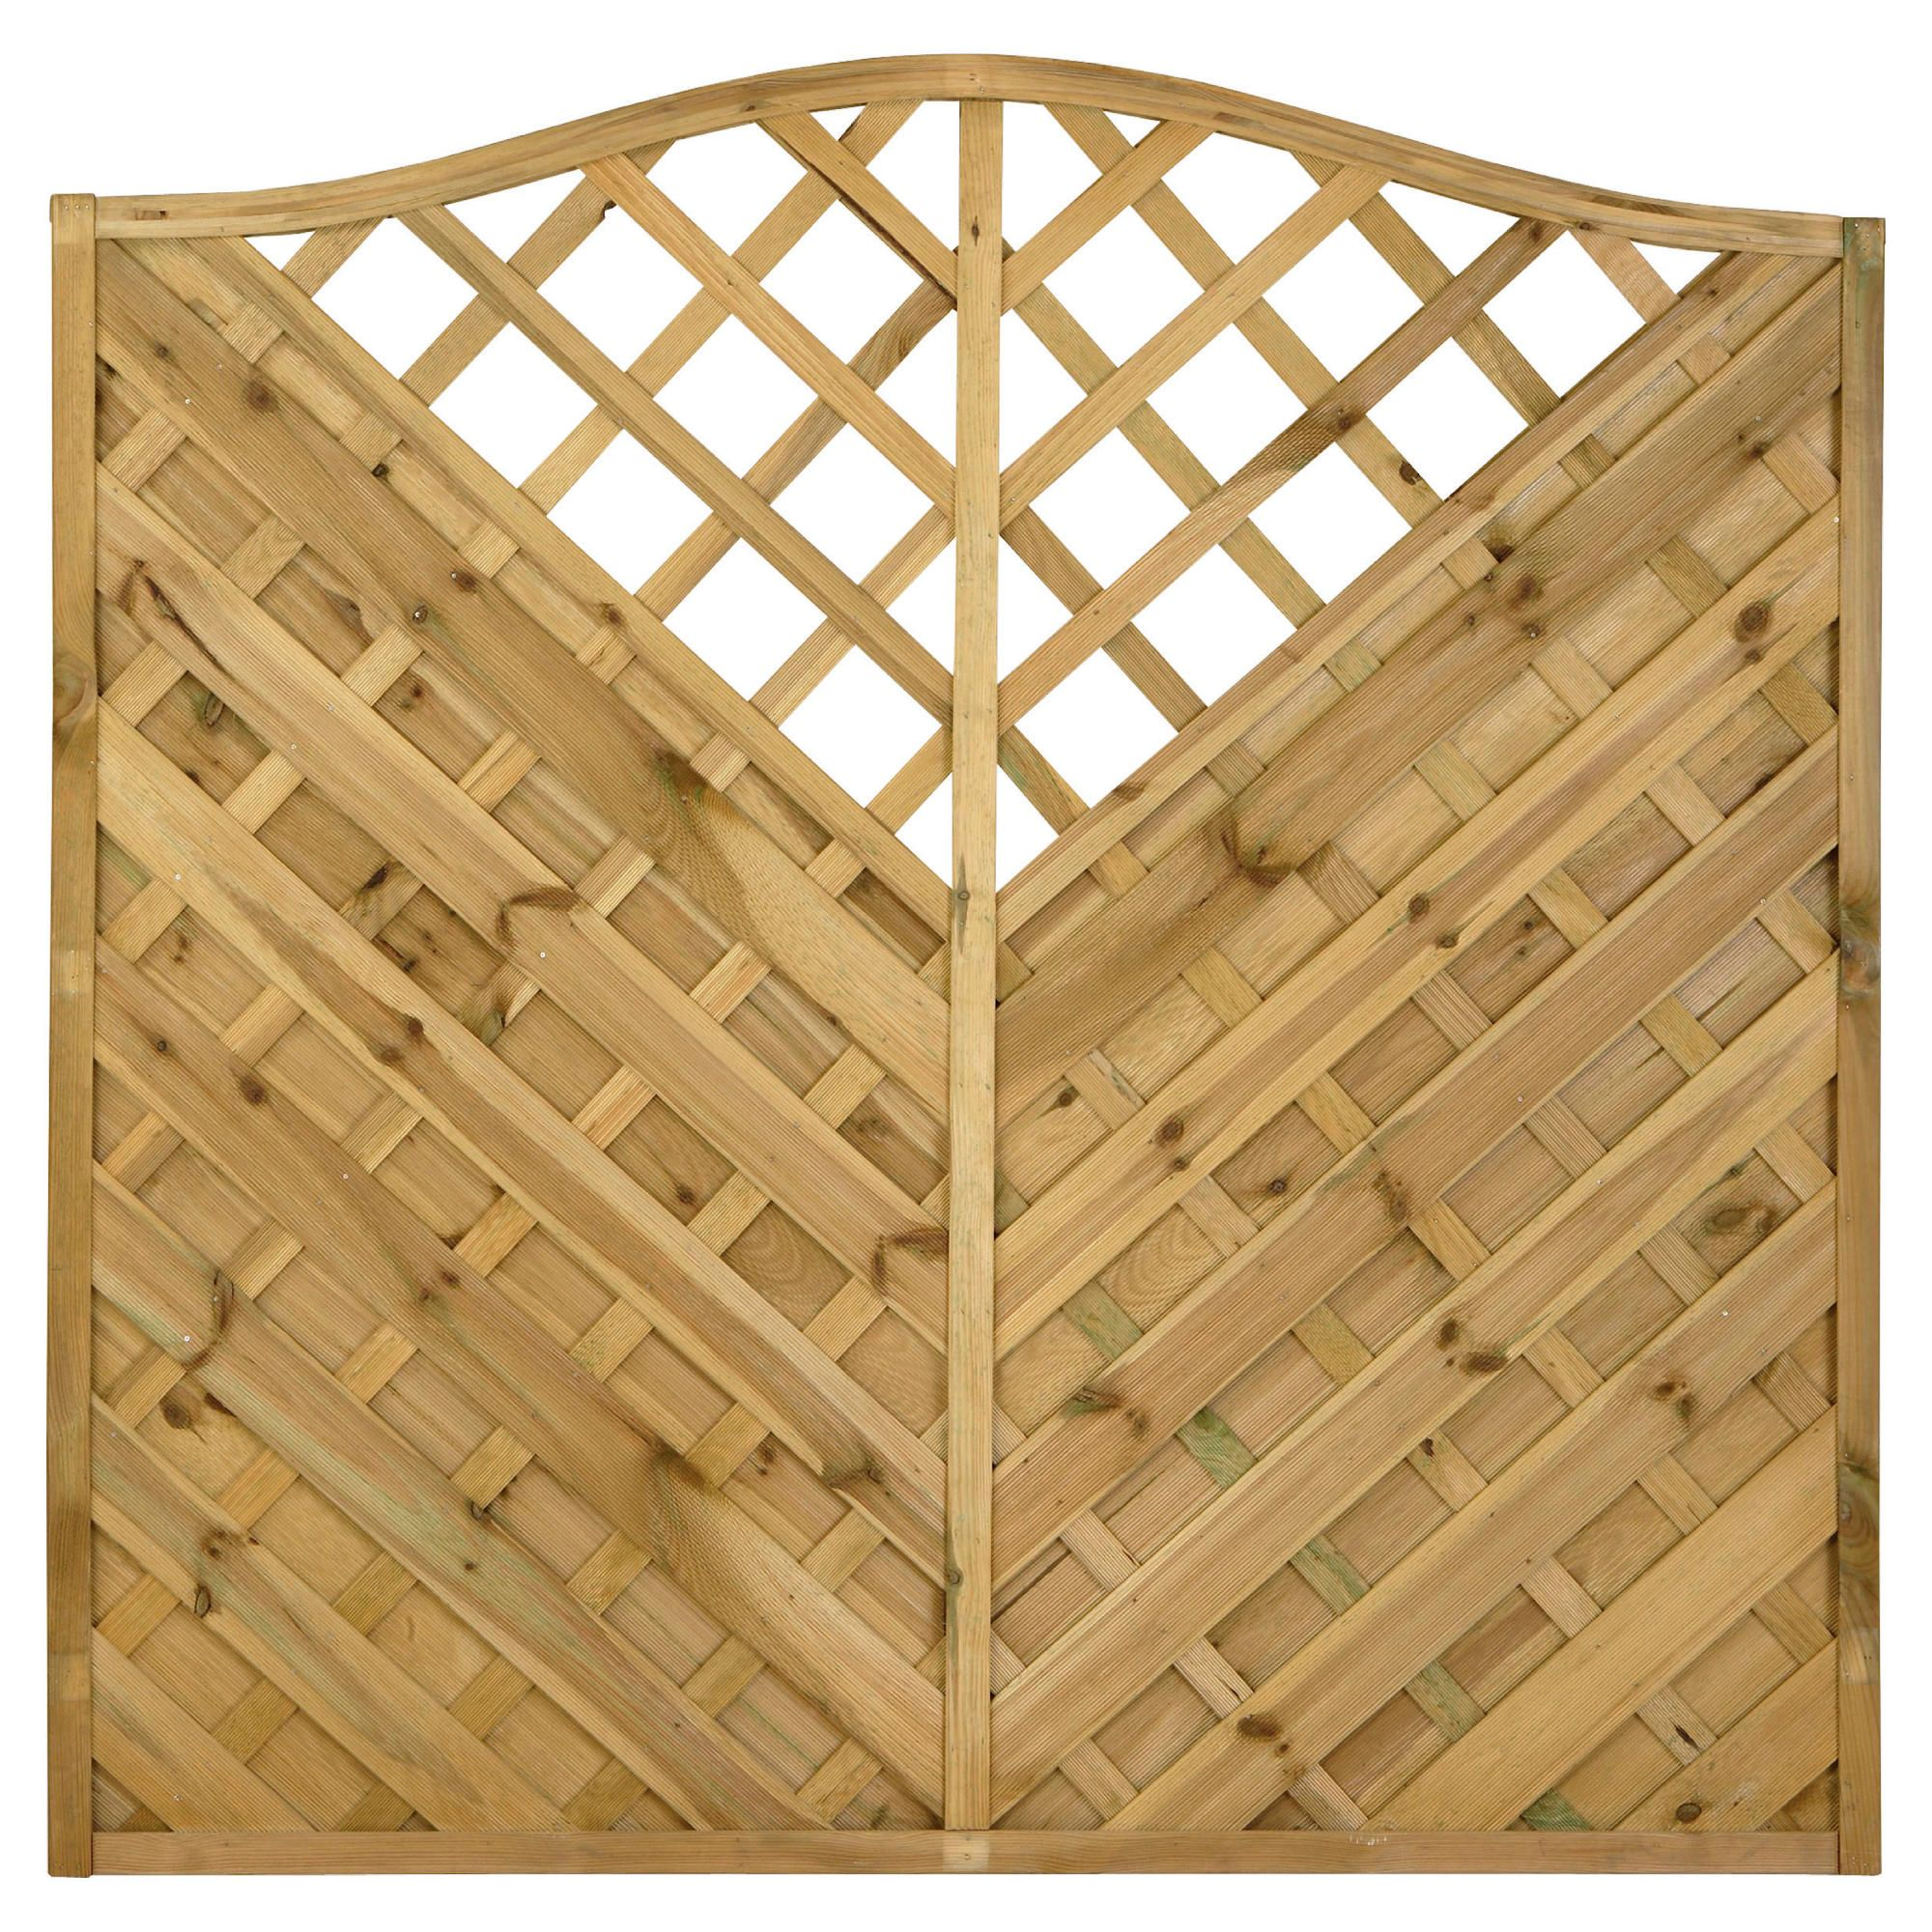 Timberdale 1.8mx1.8m Verona 3 Screen Pack with Posts and Fixing Brackets at Tesco Direct